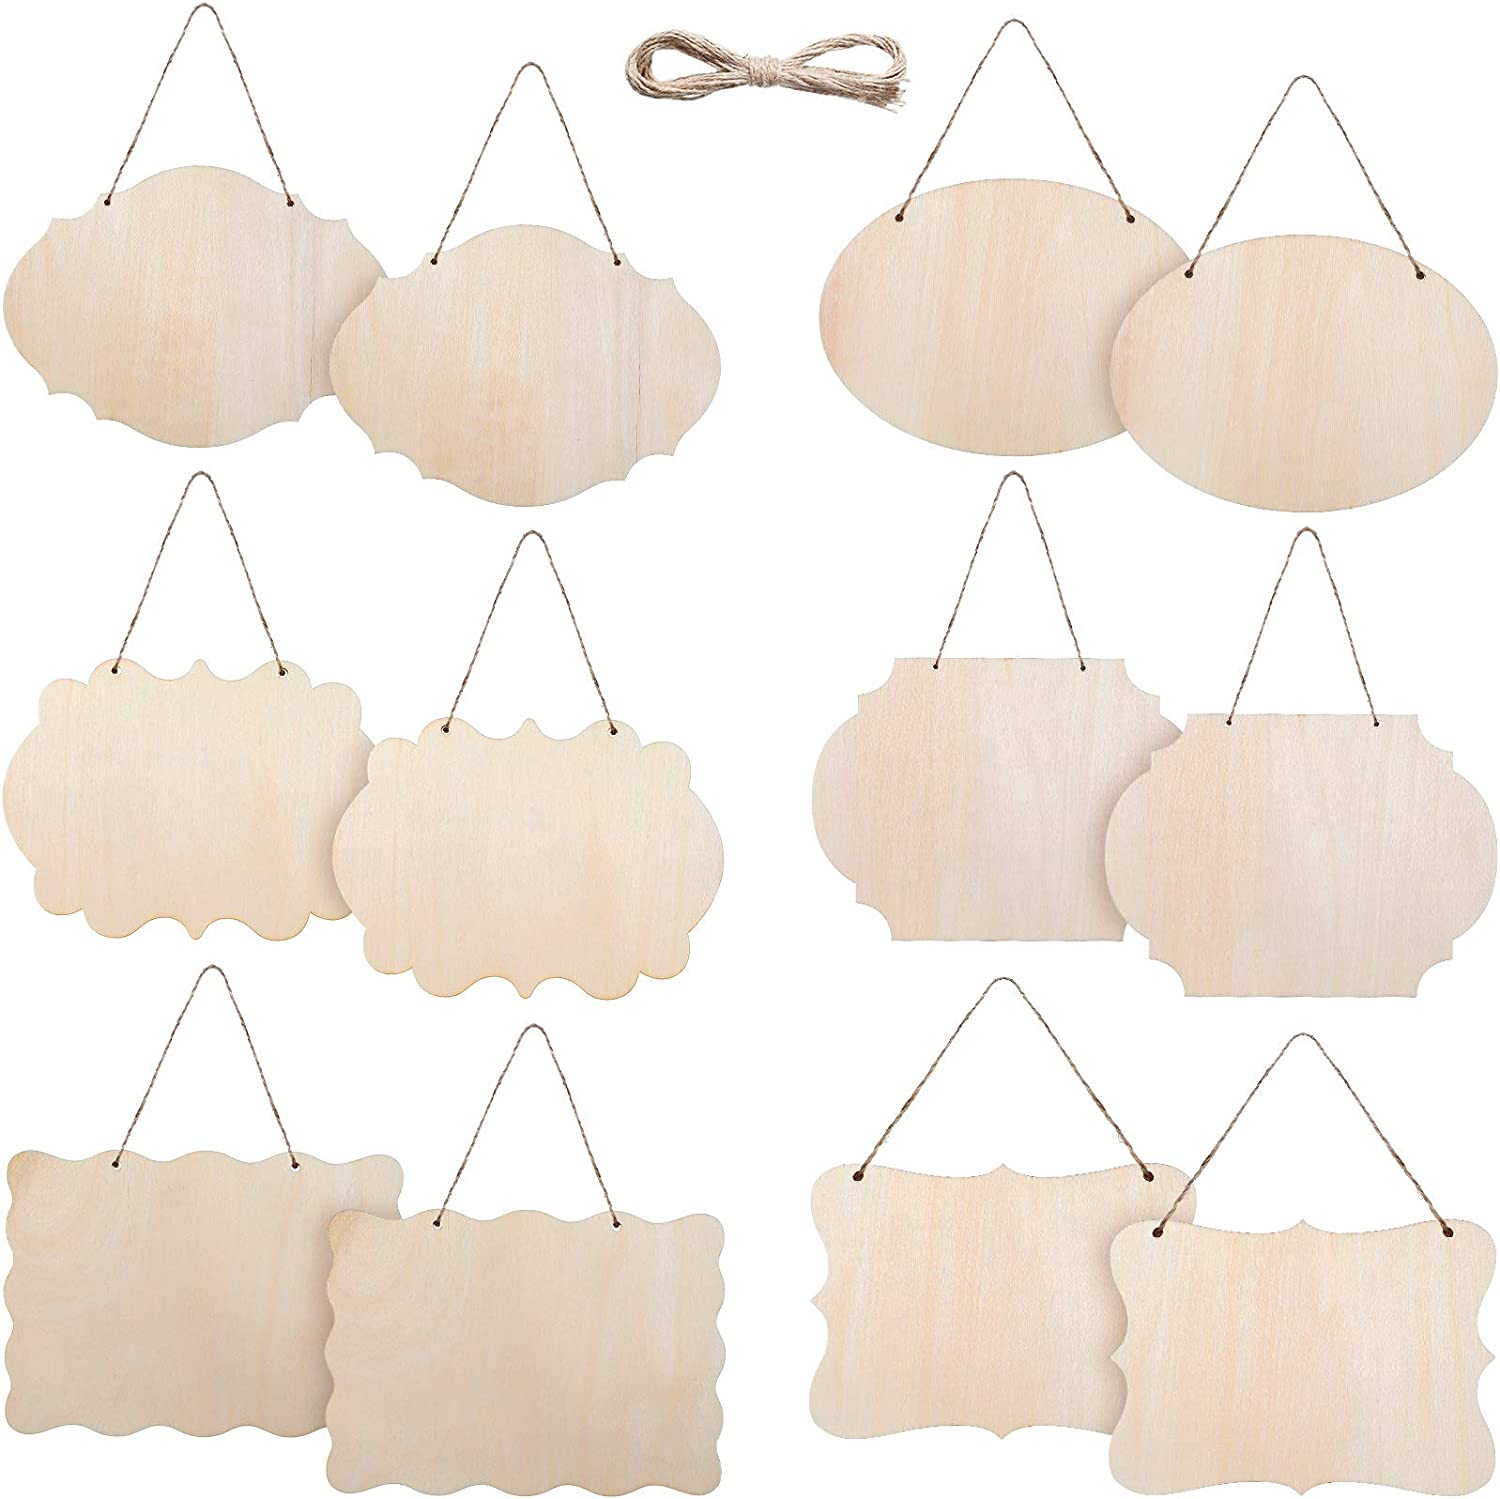 Jetec 12 Pieces Unfinished Hanging Wood Sign Rectangle Wood Blank Plaque Hanging Wood Sign with Rope for Pyrography, Painting, Writing, Decoration, DIY Craft, 6 Designs